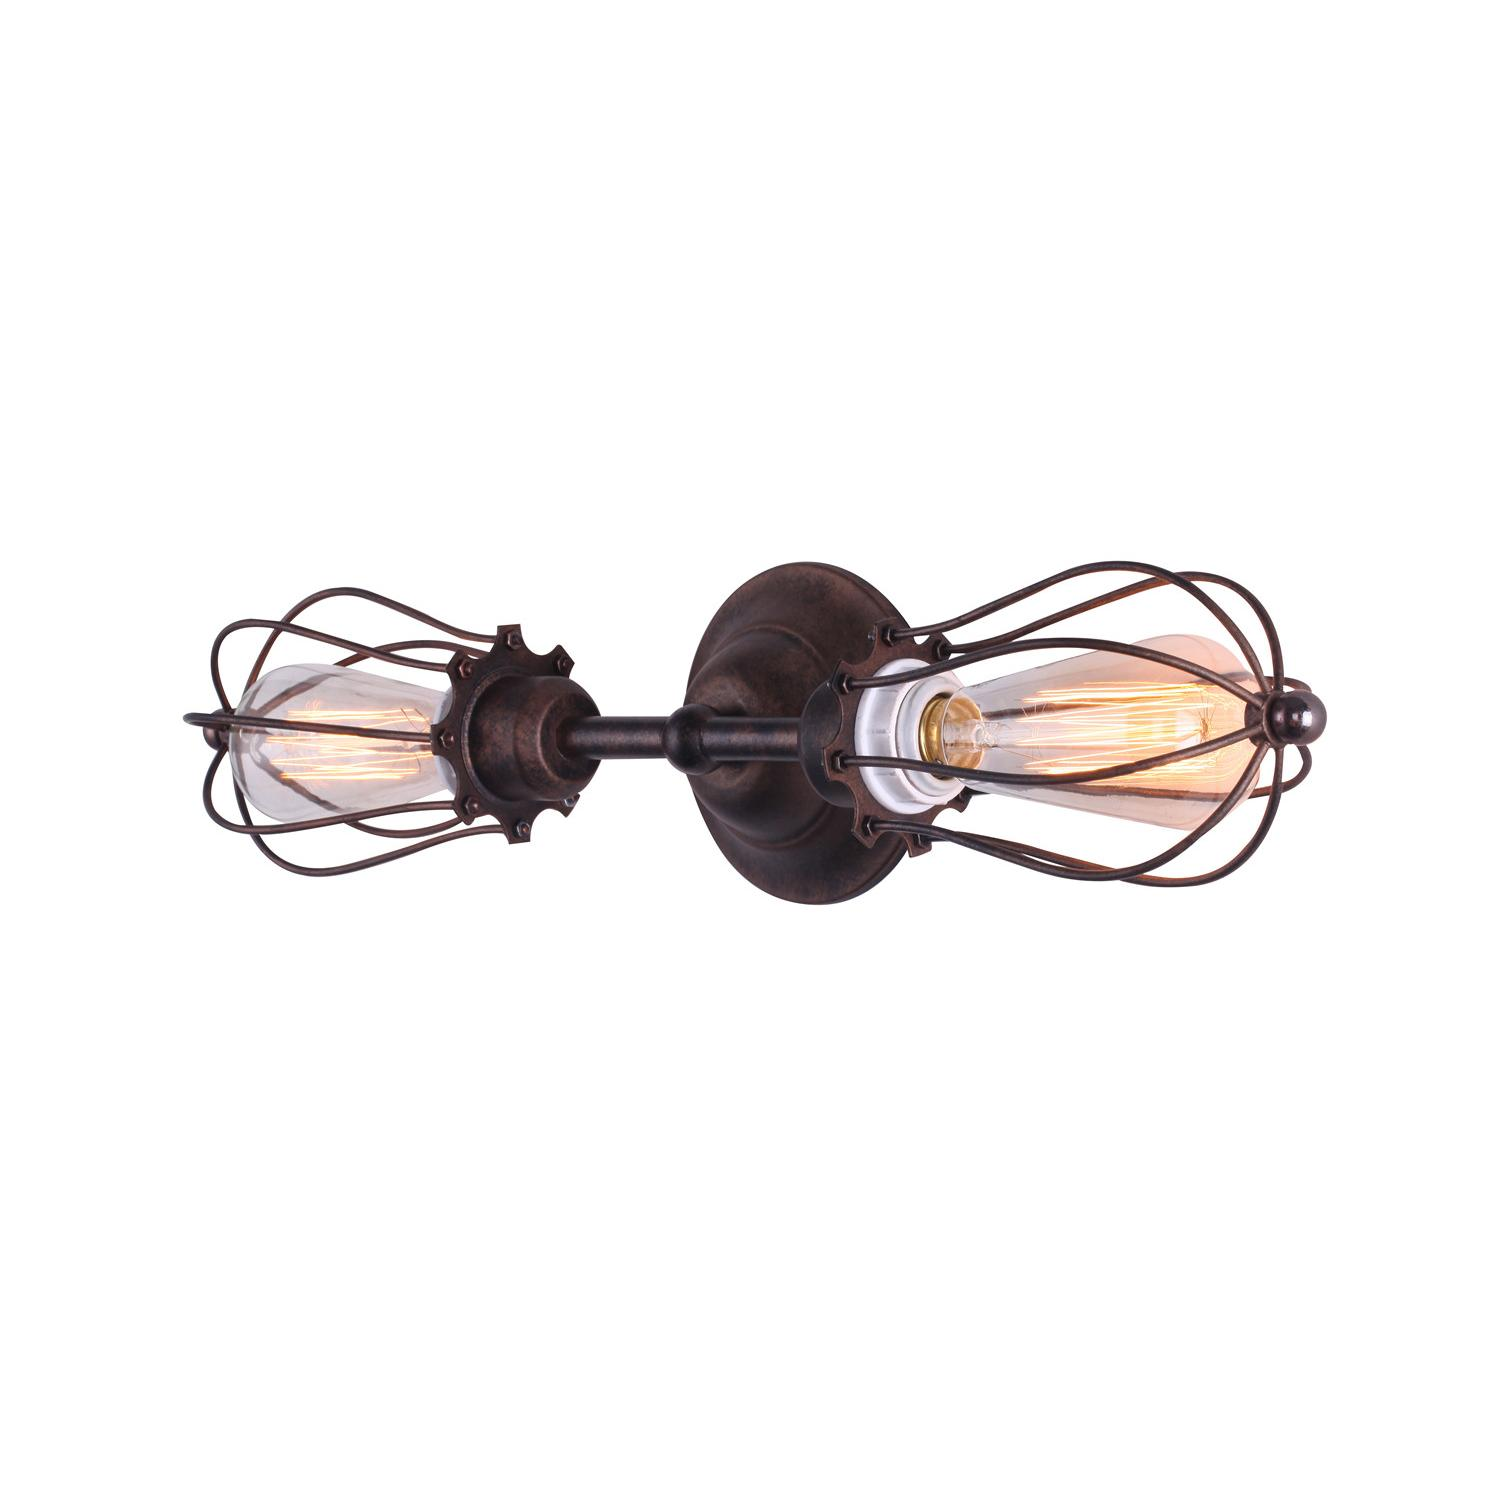 Marconi Small Cage Inline Double Sconce Black